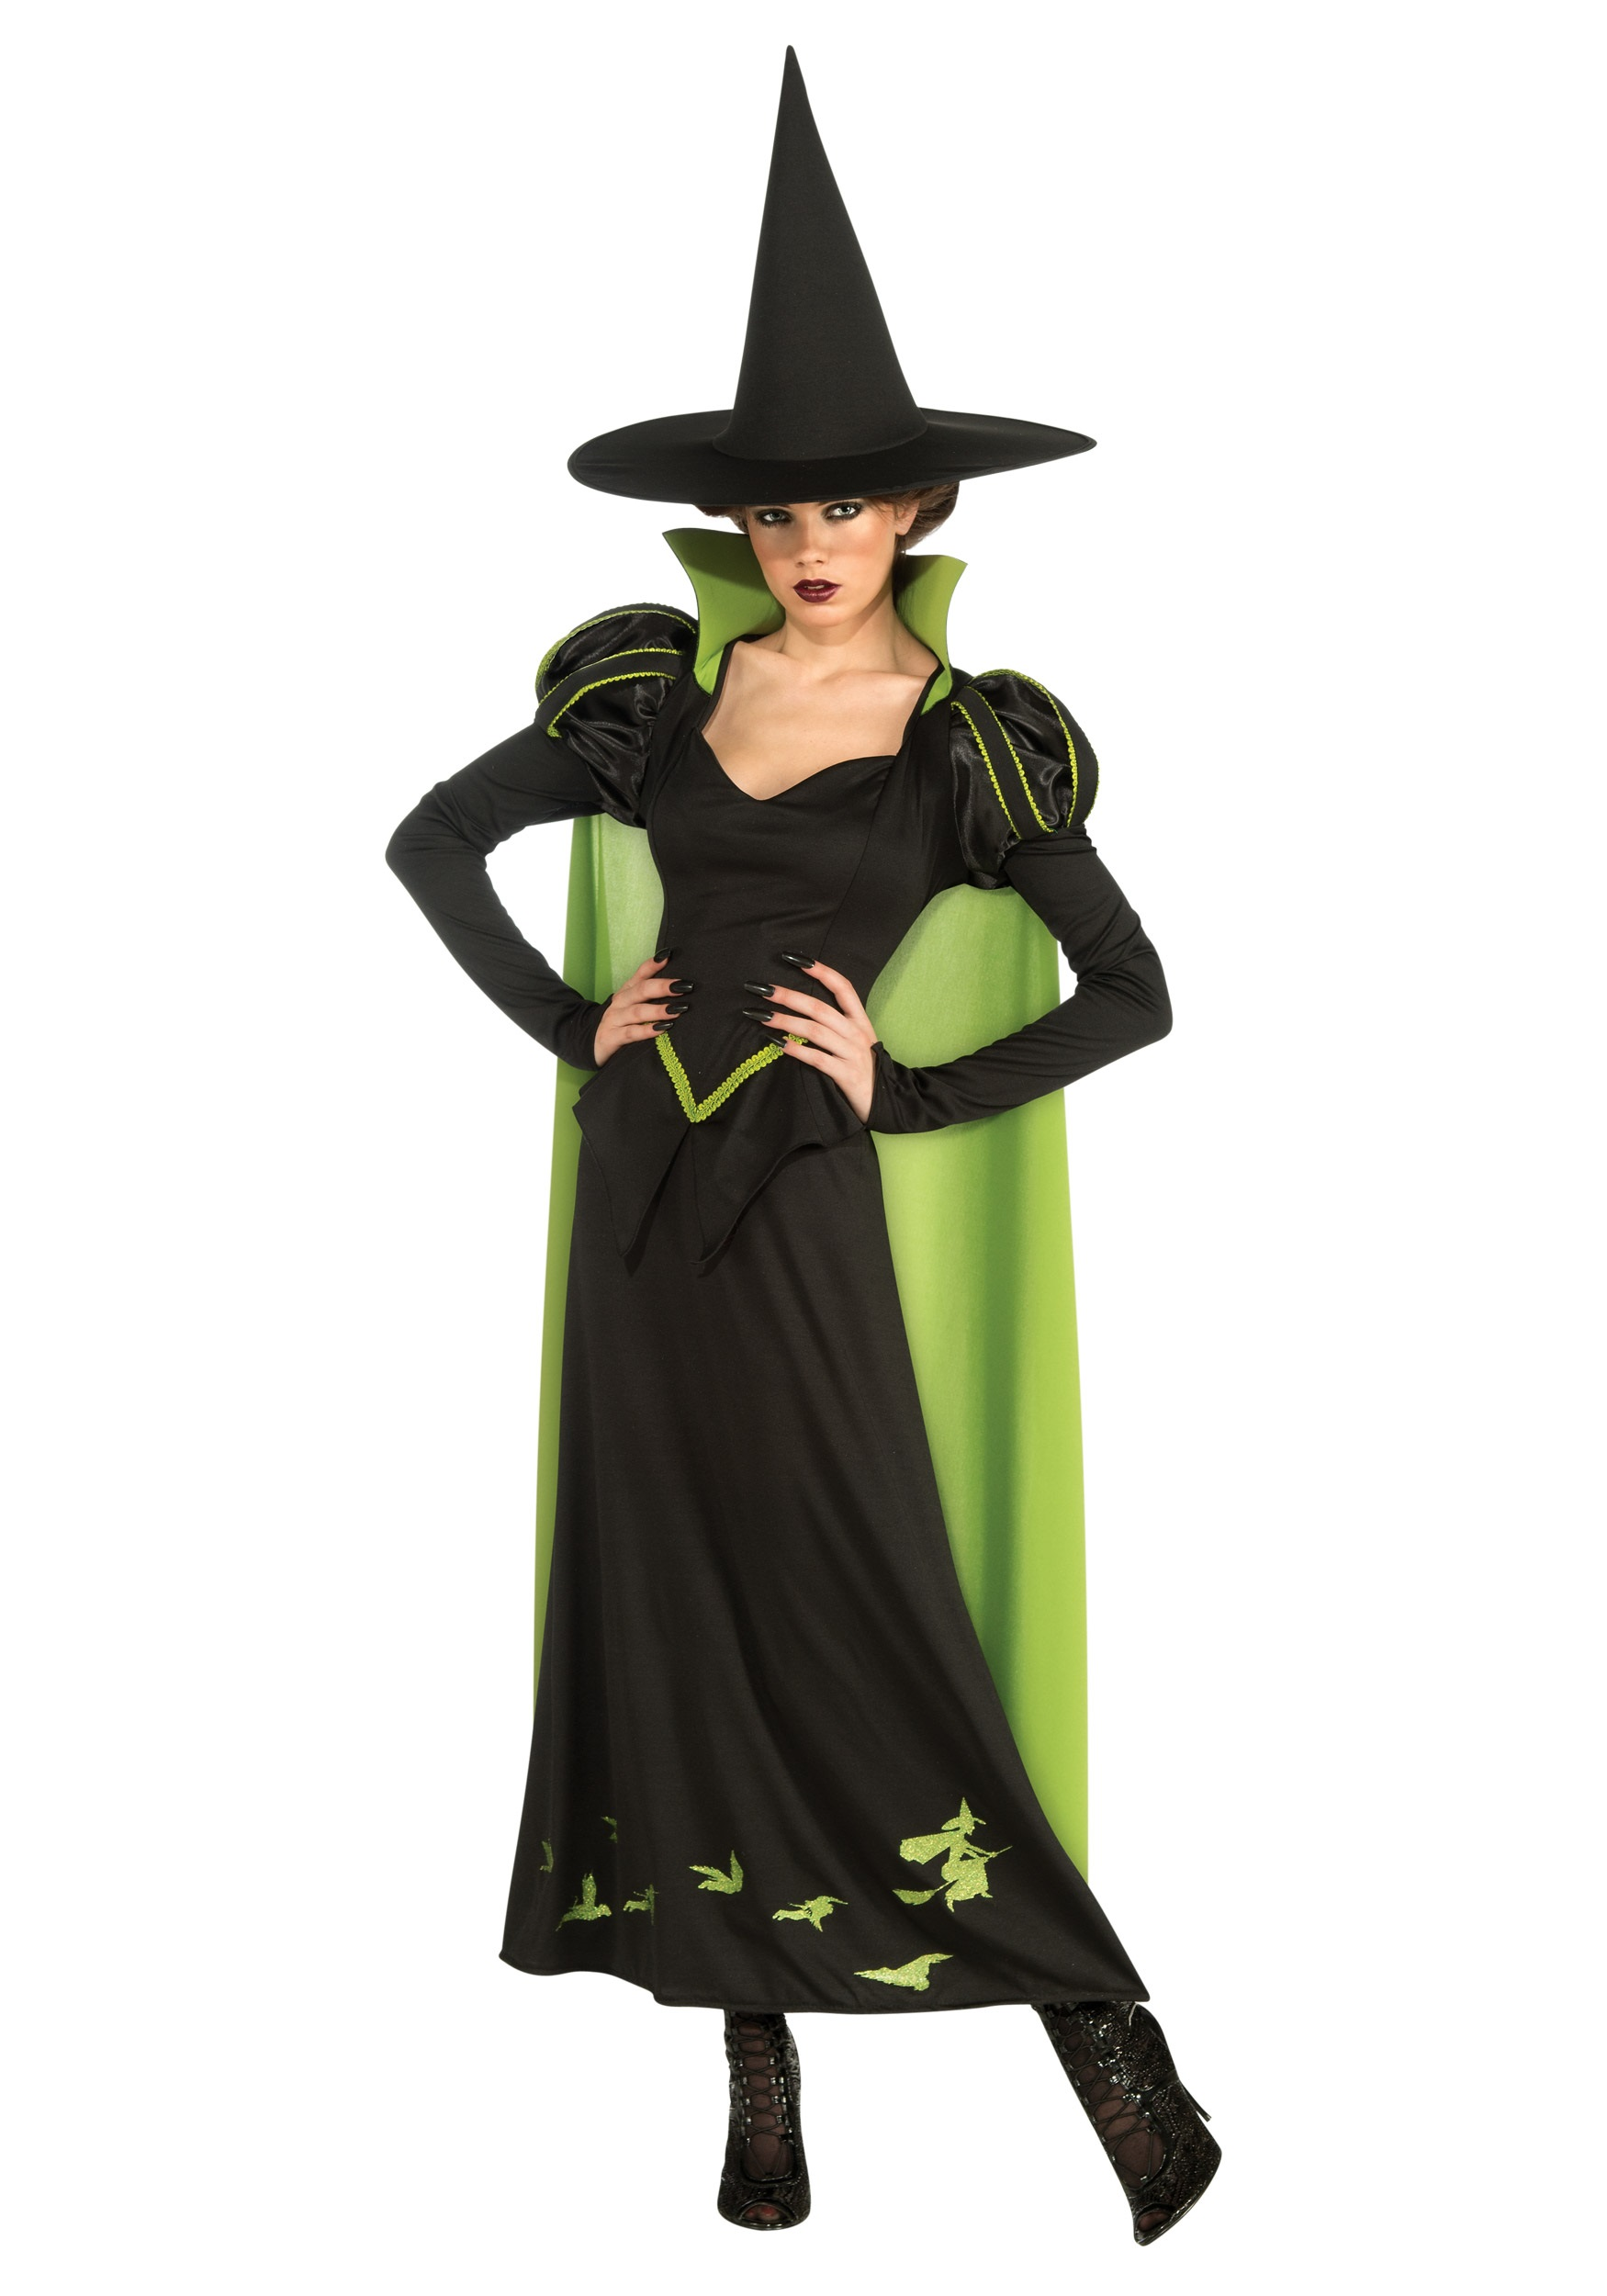 Carvinal Black and Green Witch Costume 26297. Loading zoom  sc 1 st  Global Lover & US$ 13.5 - Carvinal Black and Green Witch Costume 26297 - www.global ...